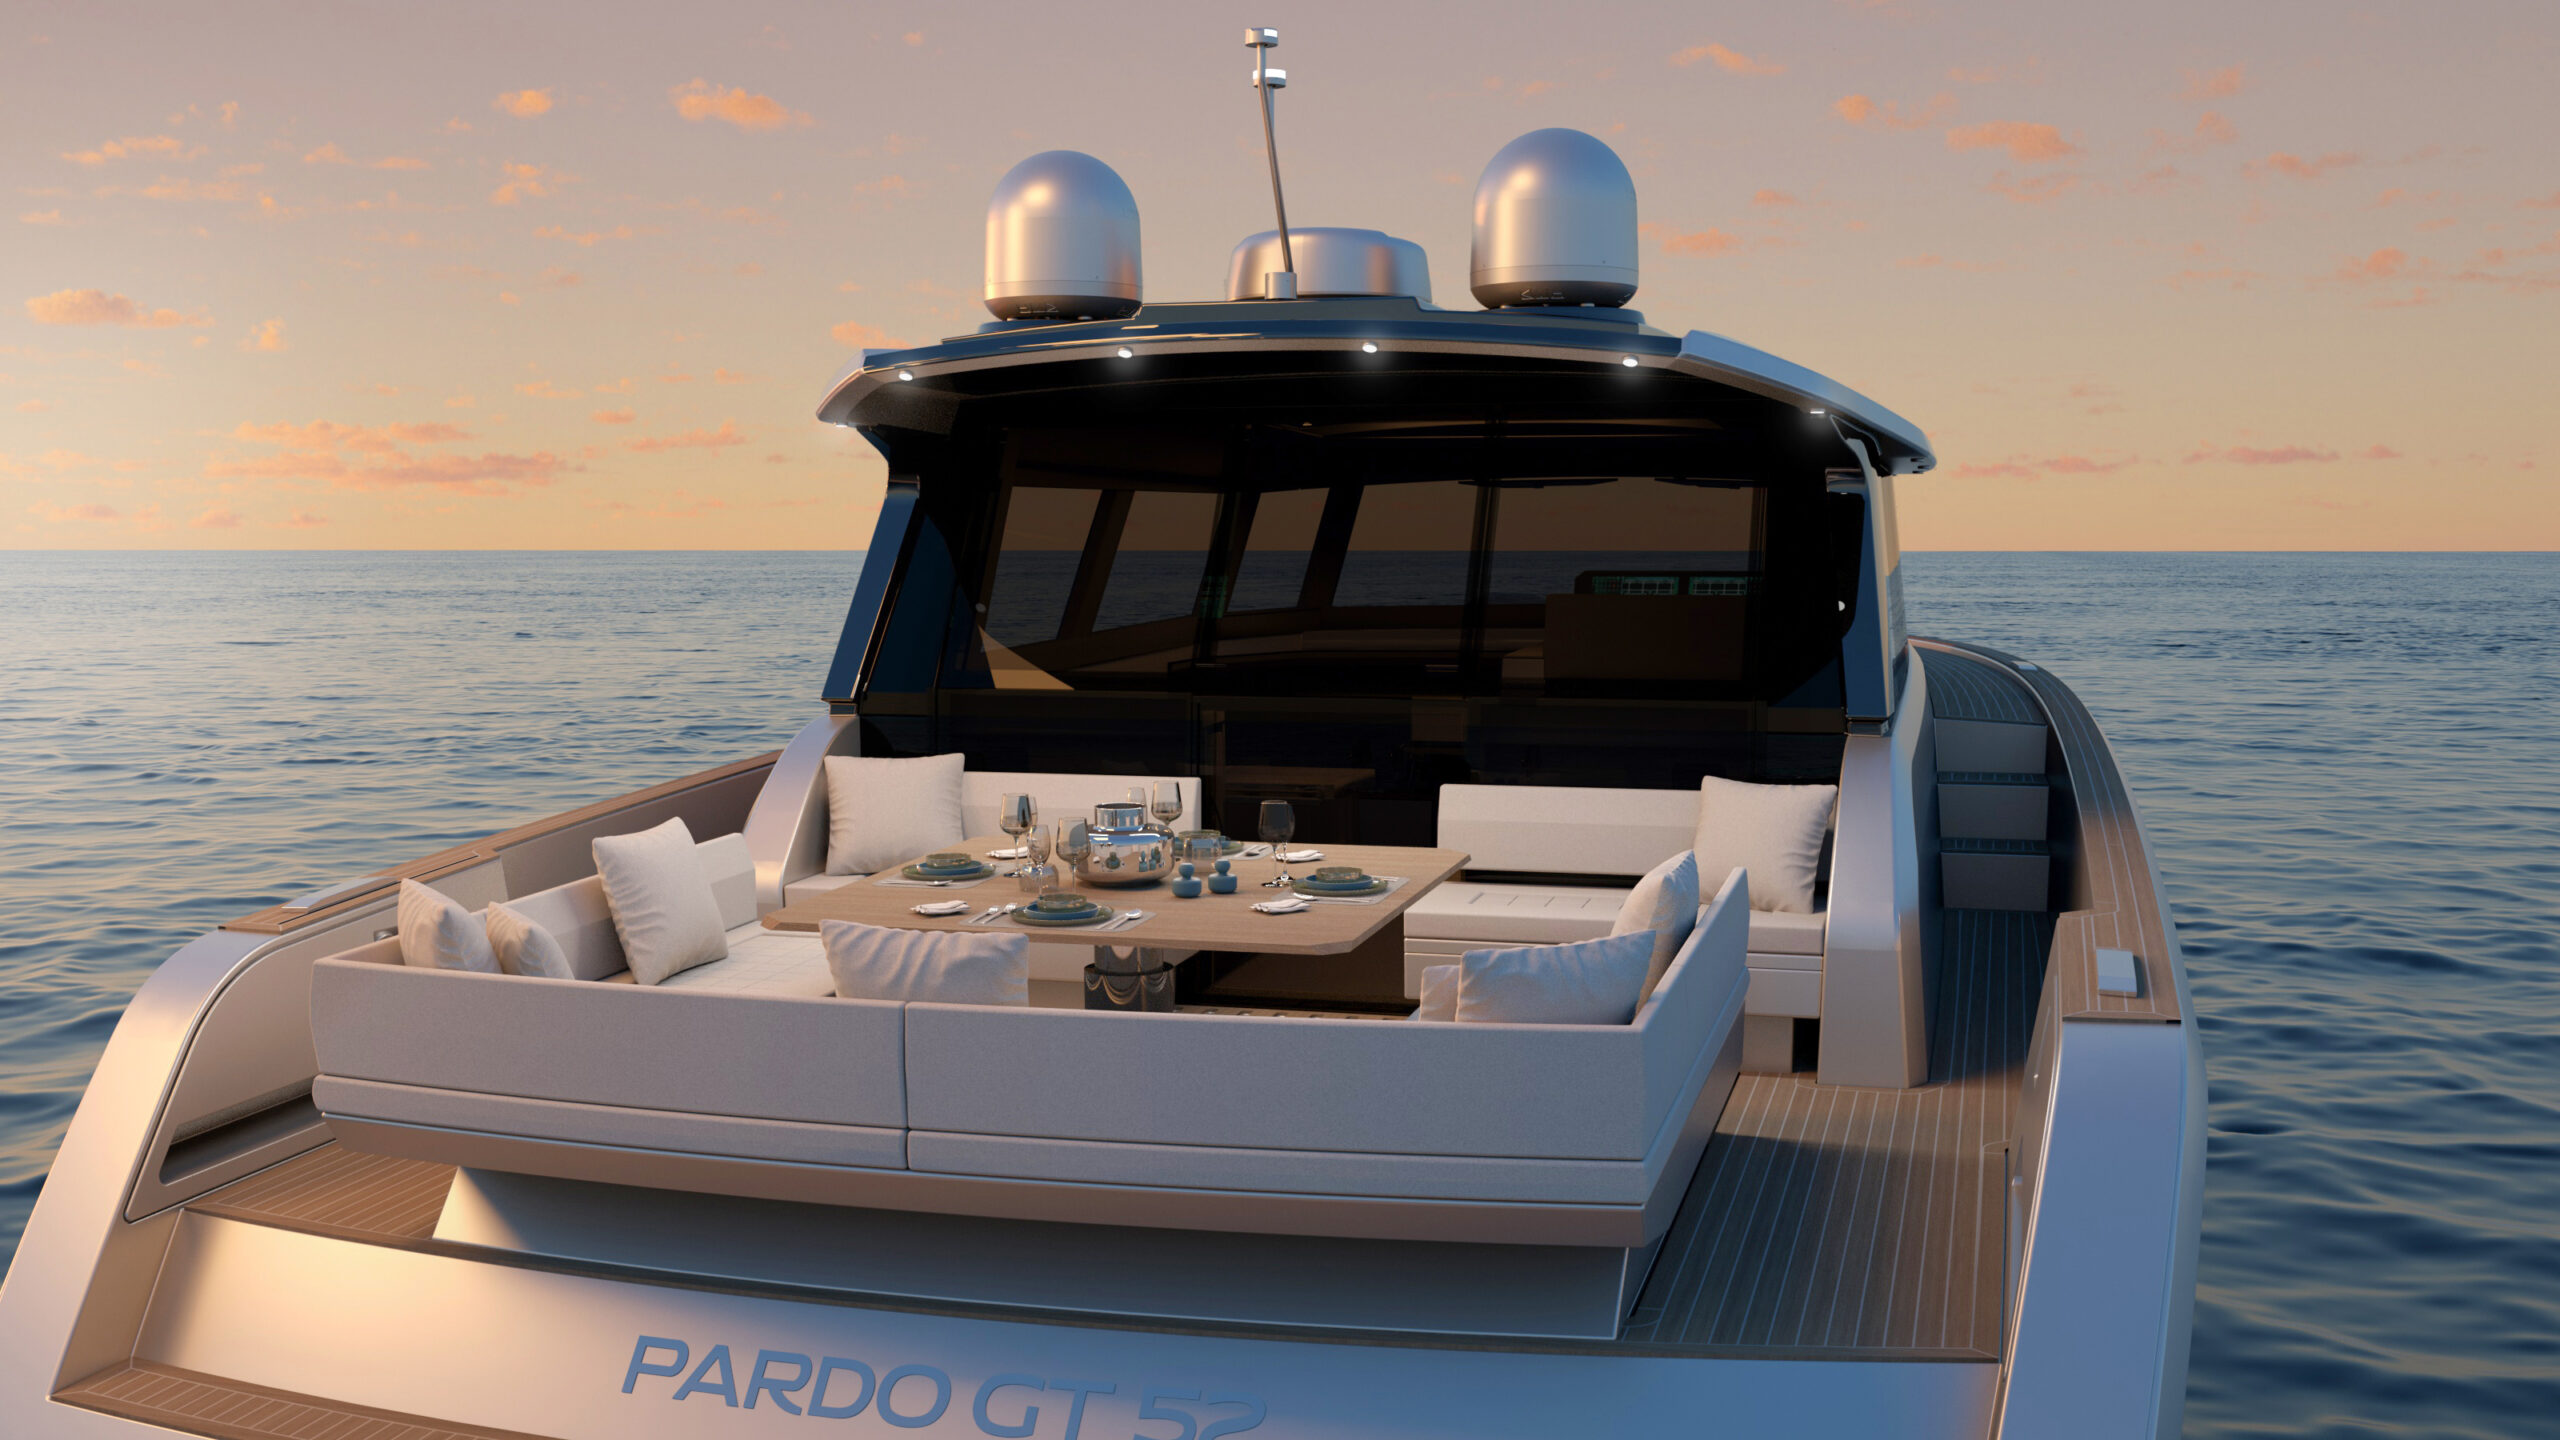 Pardo GT52 from rear with sundeck set as table